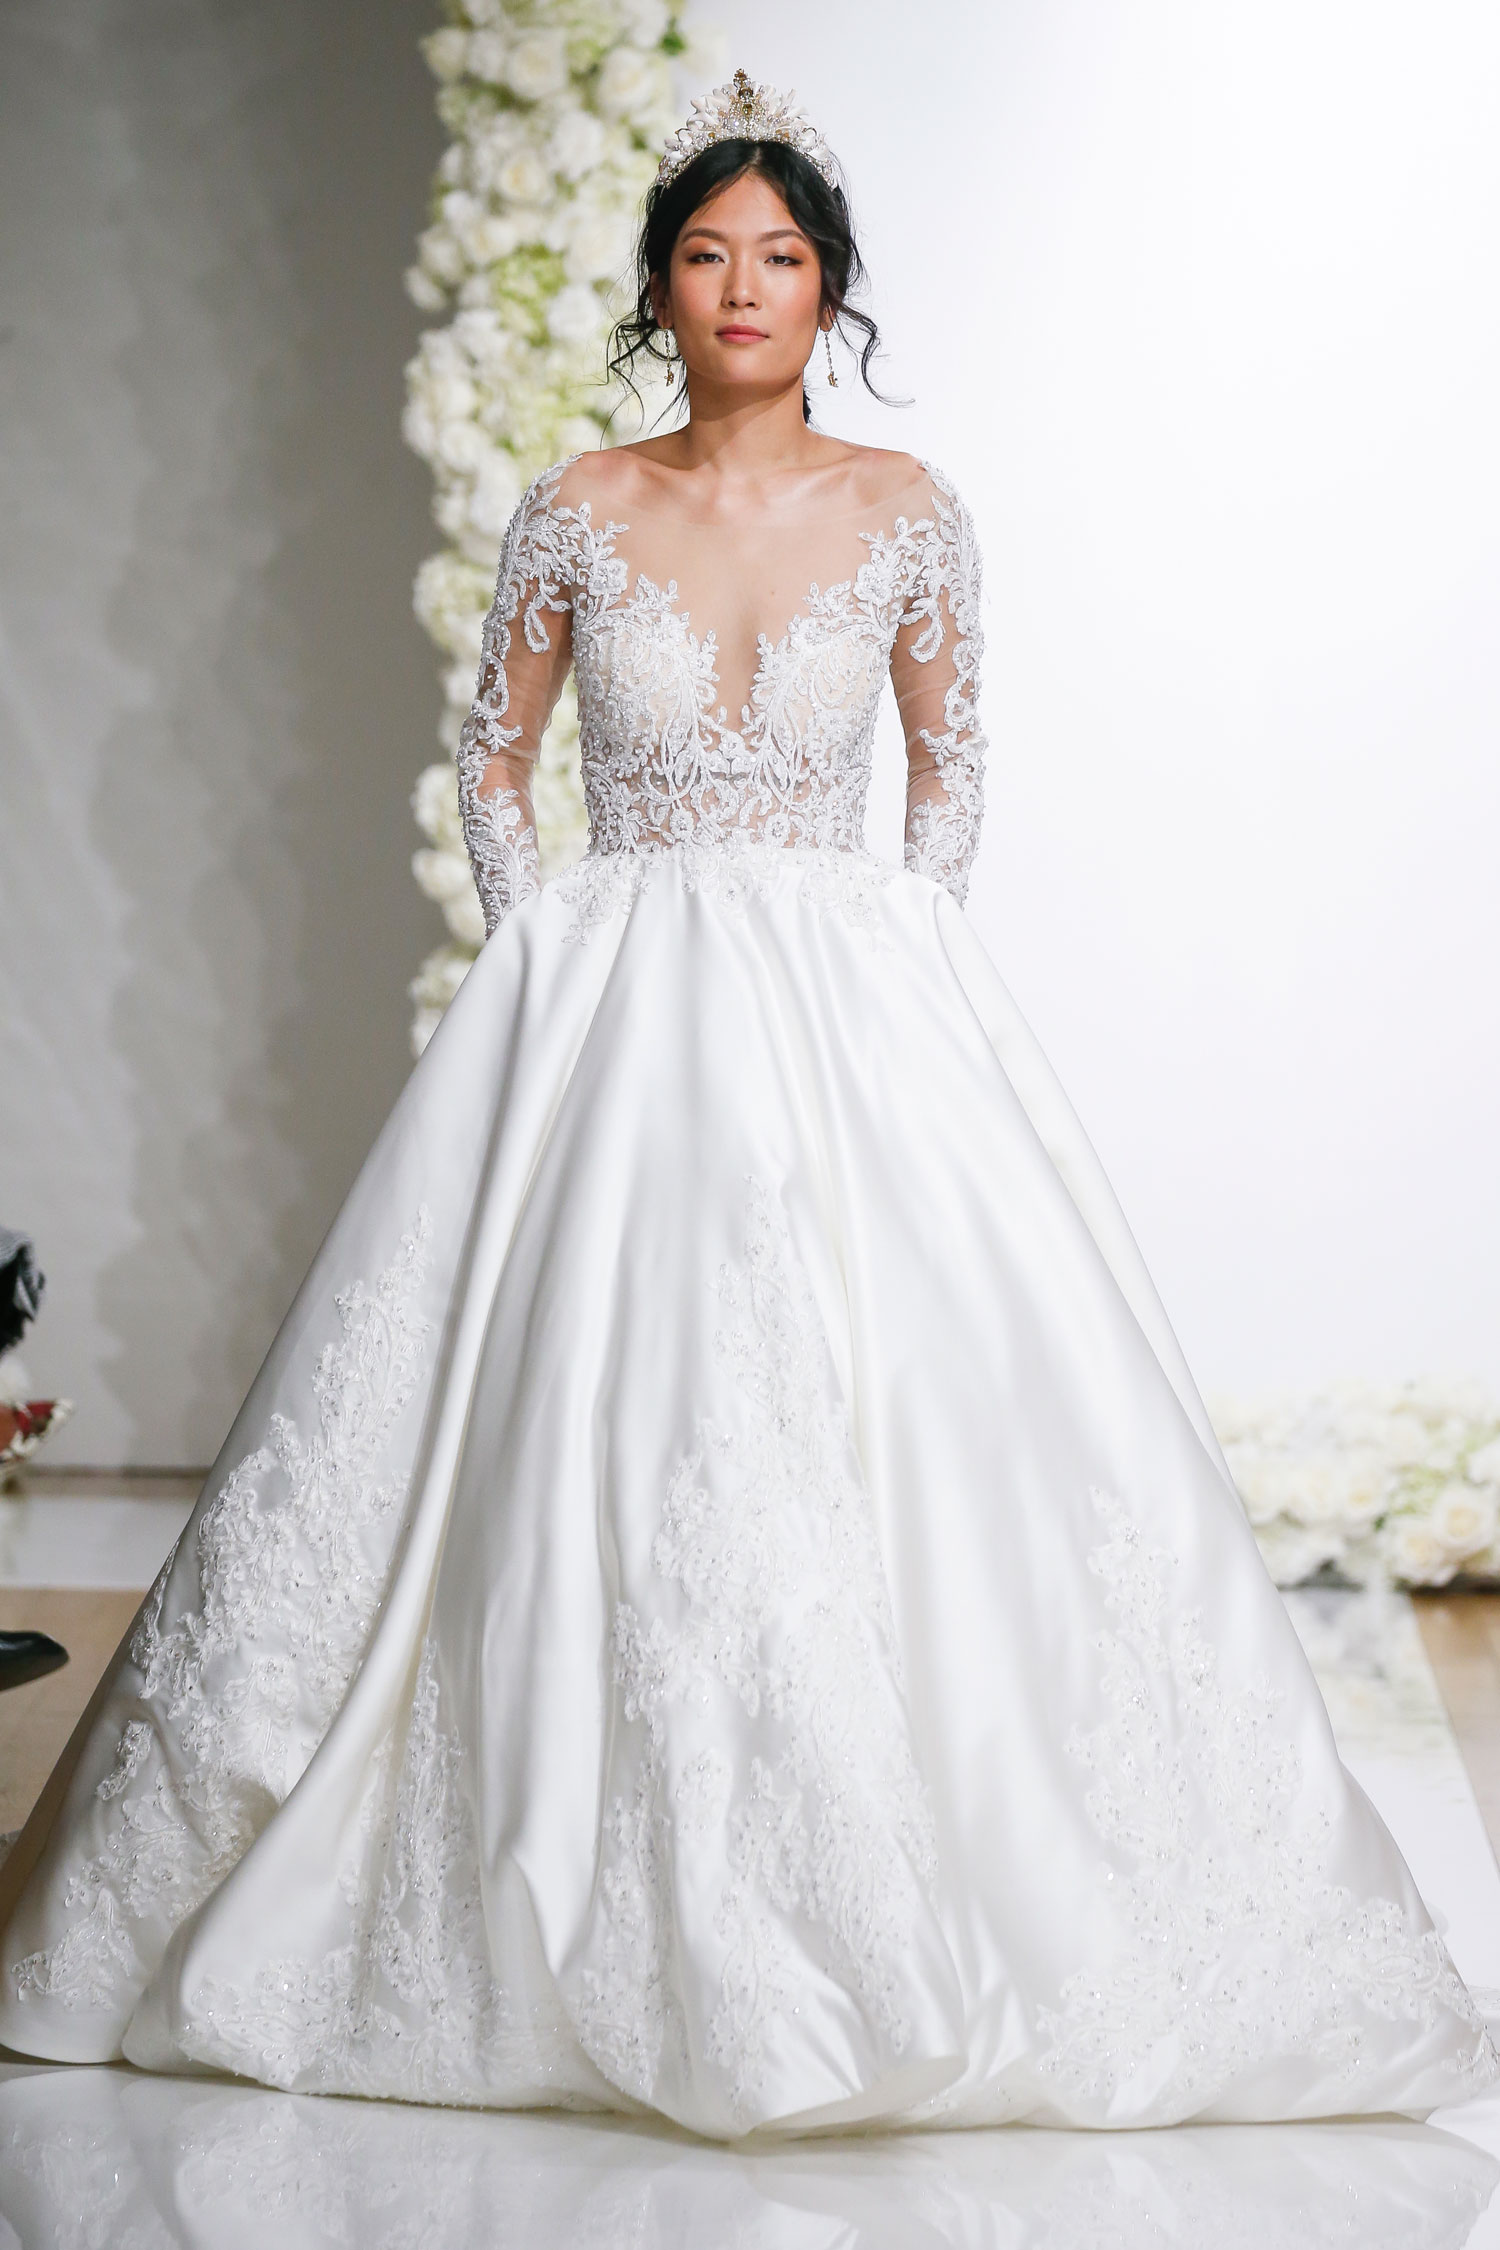 Long sleeve illusion ball gown Morilee by Madeline Gardner royal wedding dress inspiration